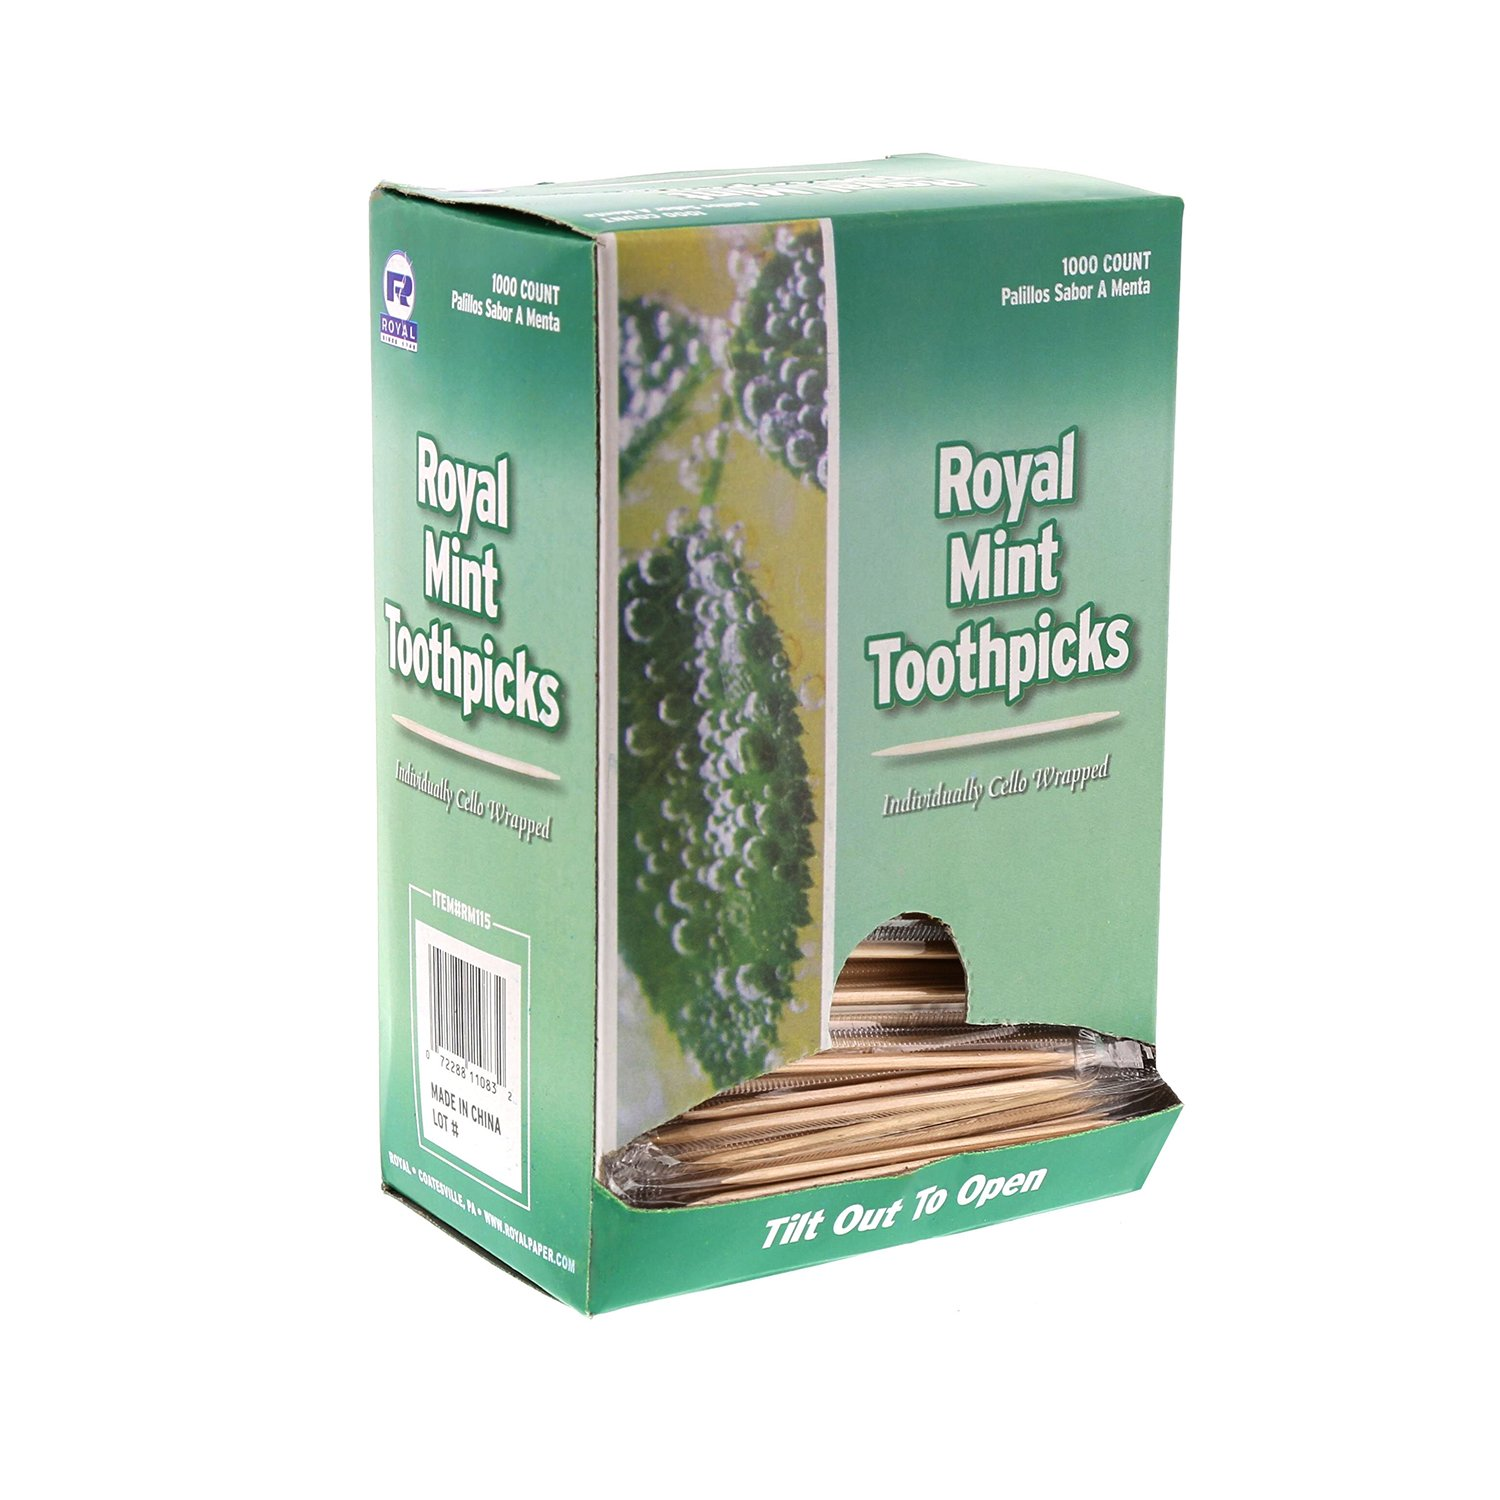 Royal RM115 Mint Individual Cello Wrapped Toothpicks, Package of 1000, 1-Pack Beige by Royal (Image #4)